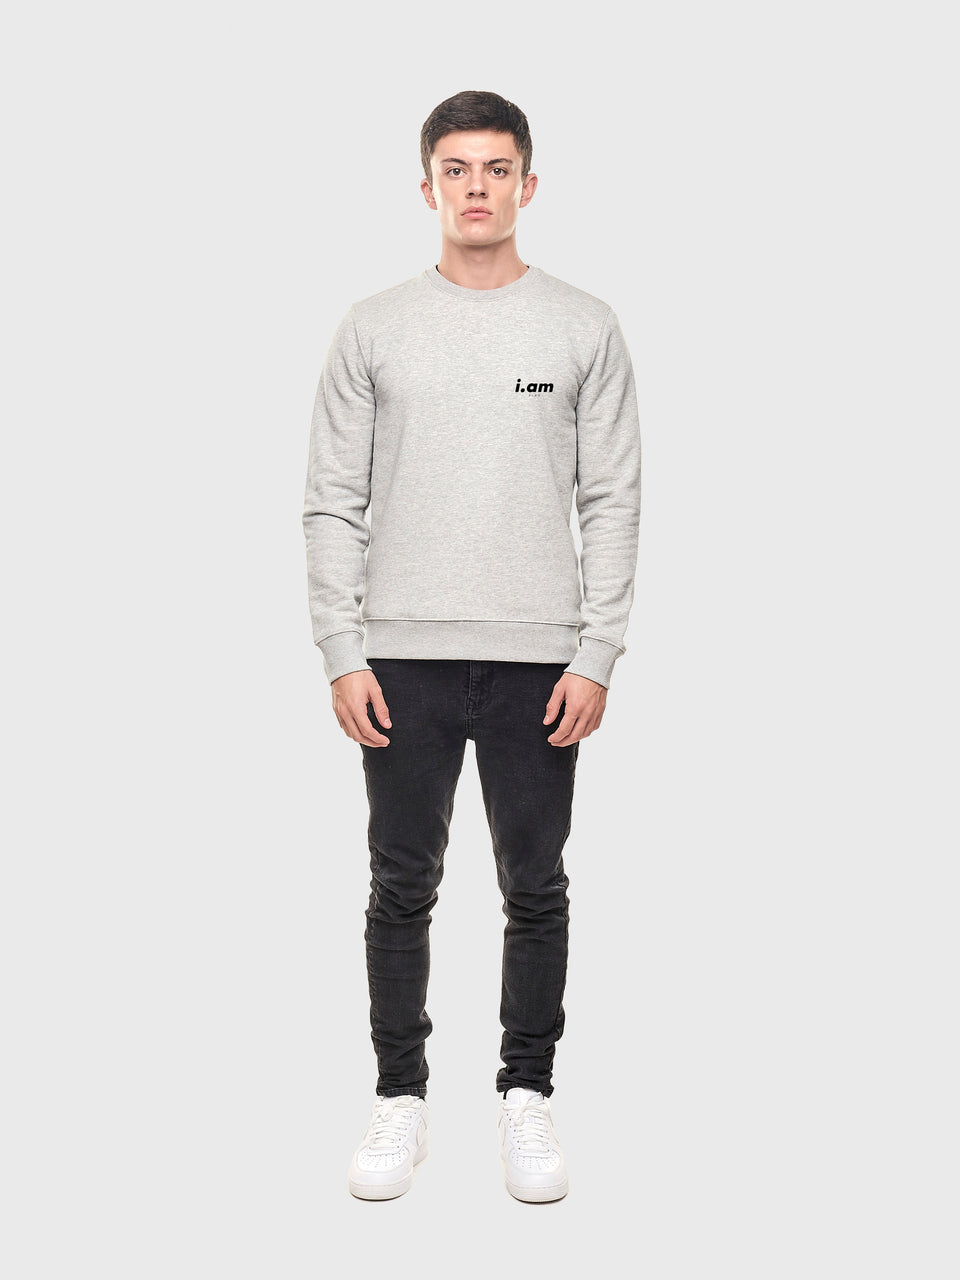 Making it - Grey - Unisex sweatshirt